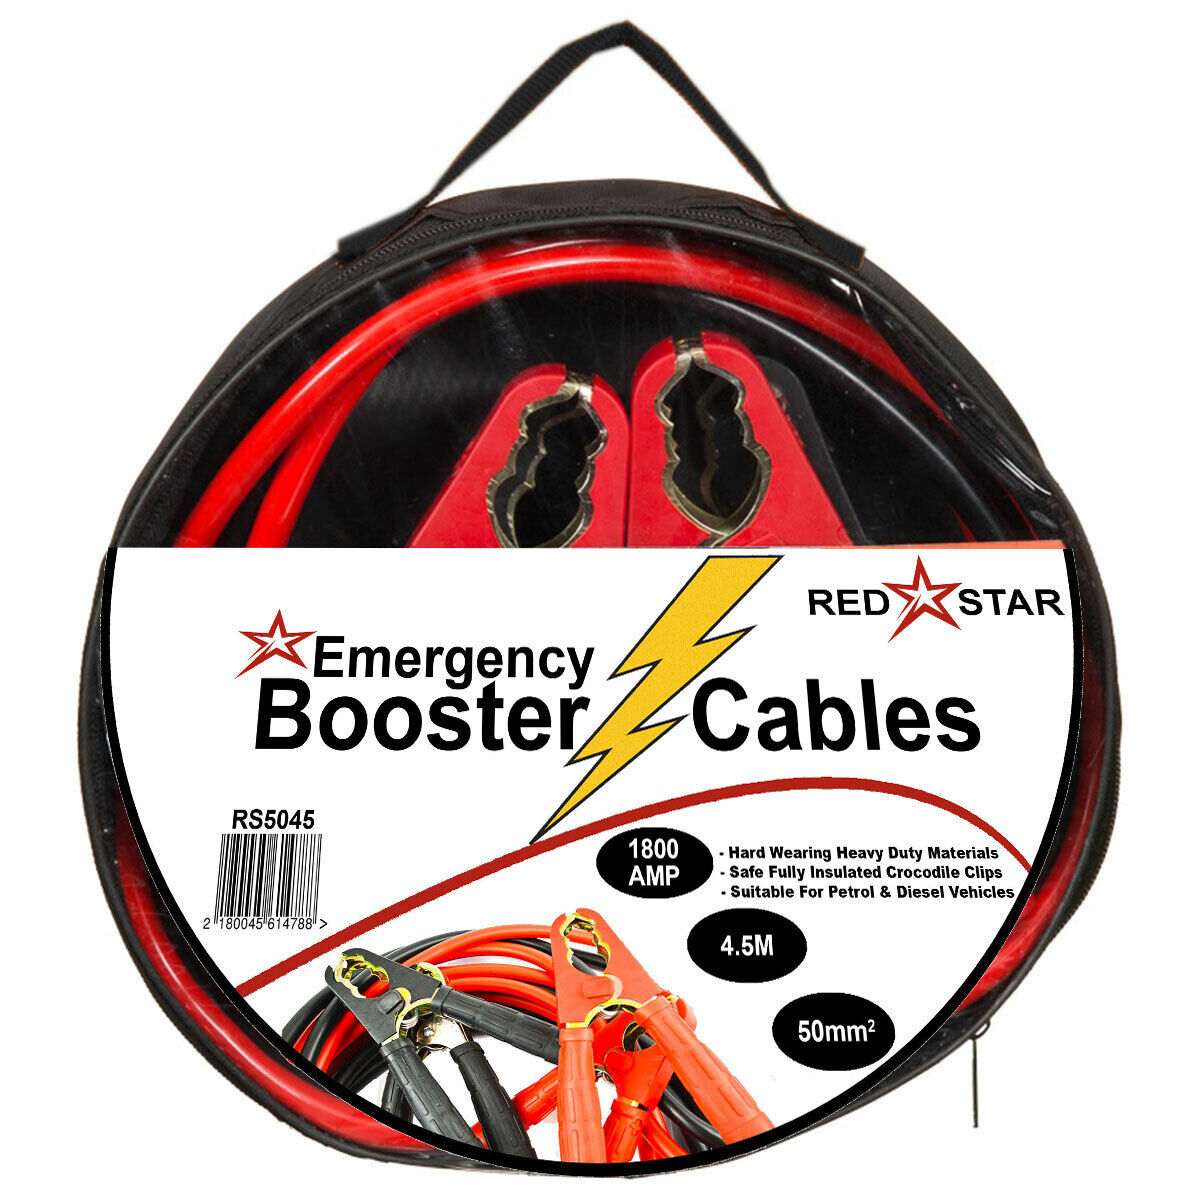 2.5m x 25mm Van Booster Cables Summit Heavy Duty Car Start Jump Leads